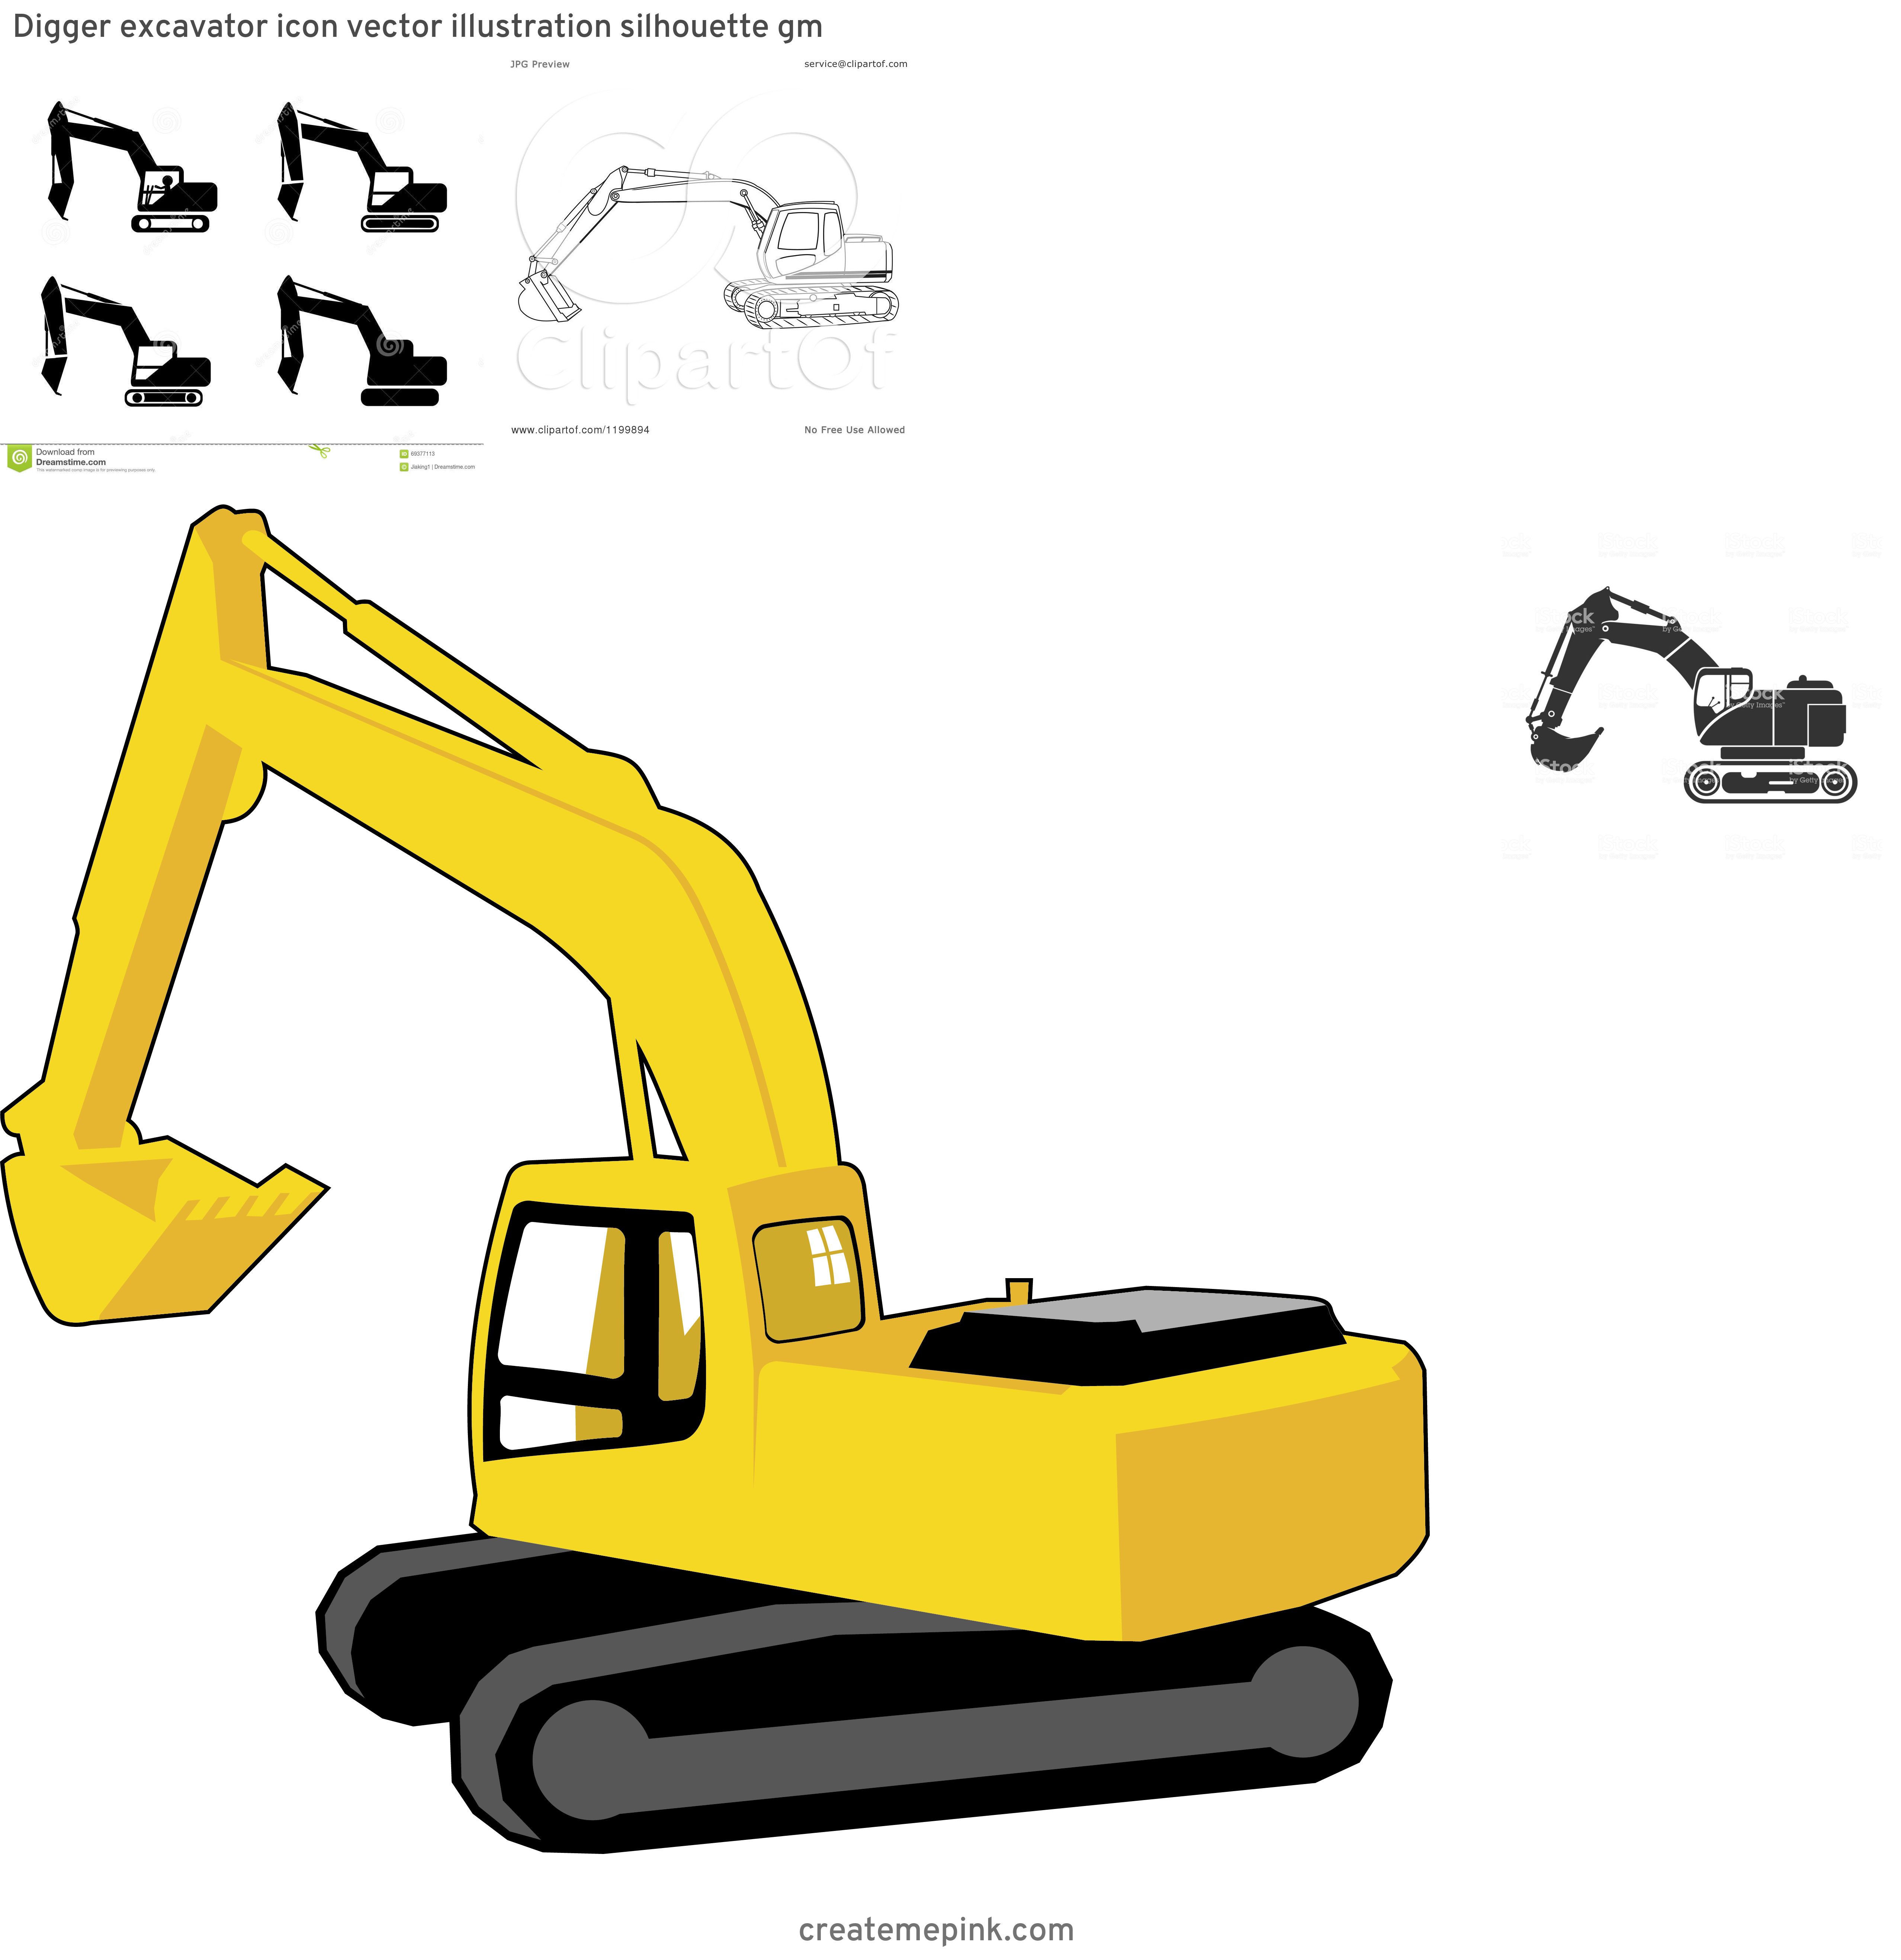 Trackhoe Vector: Digger Excavator Icon Vector Illustration Silhouette Gm